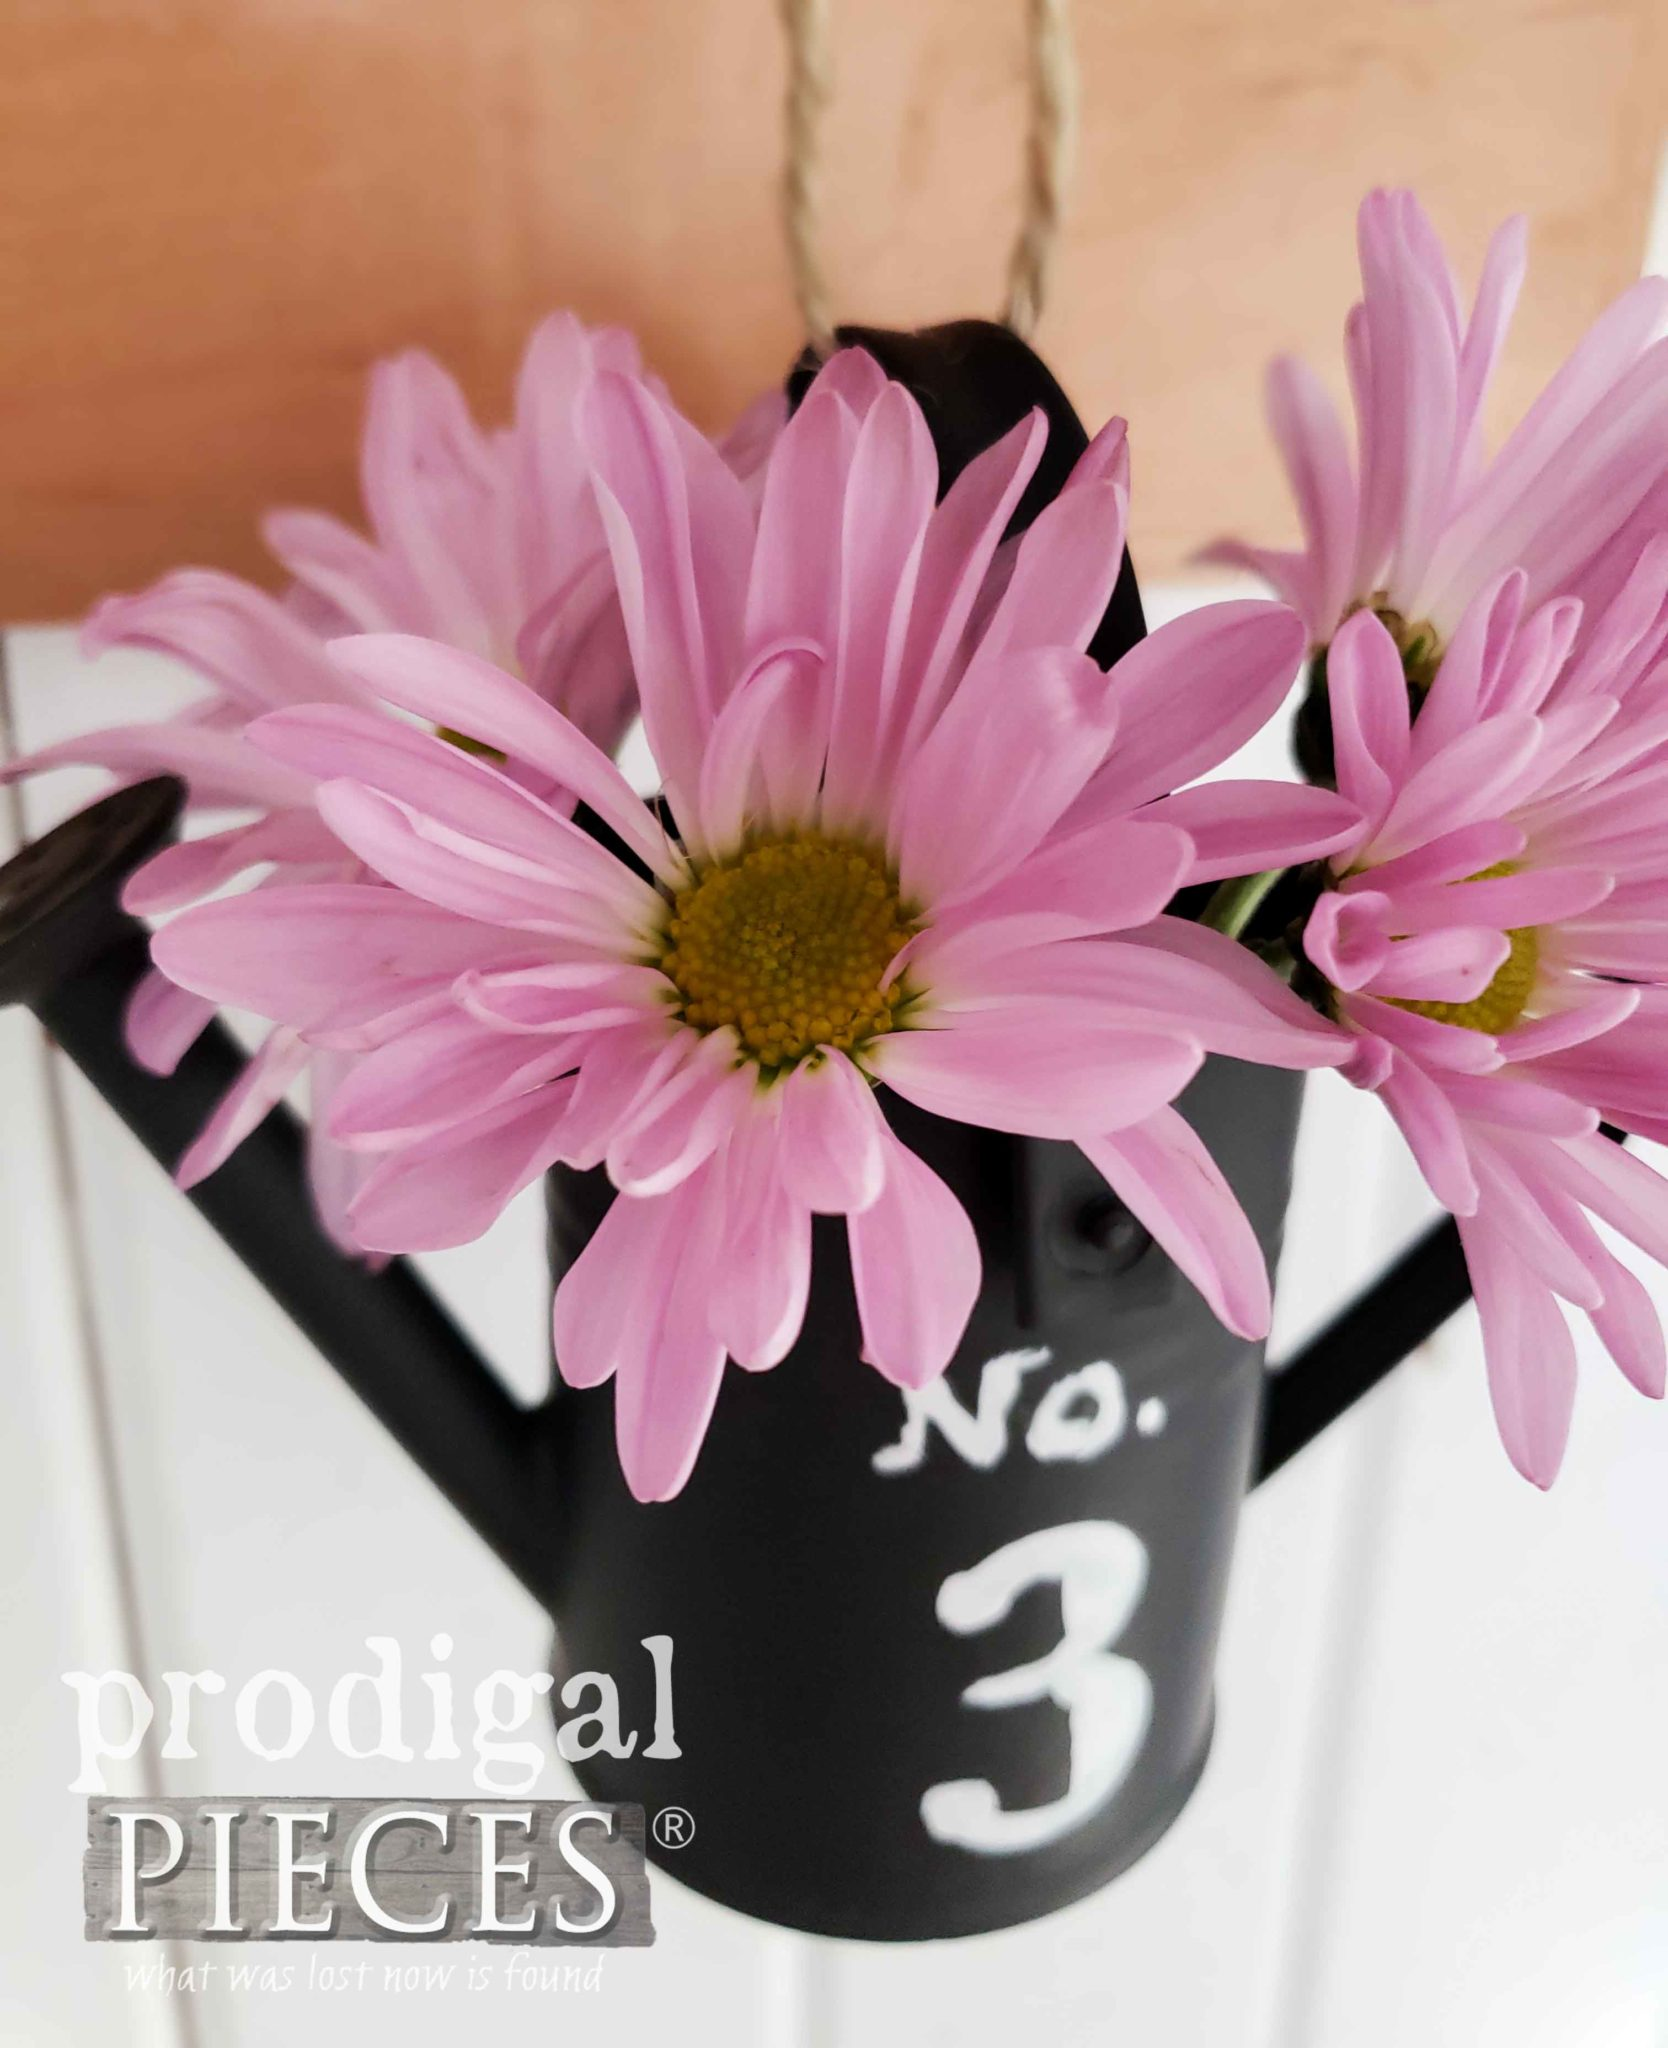 Pink Daisies in Miniature Watering Can by Prodigal Pieces | prodigalpieces.com #prodigalpieces #farmhouse #home #diy #homedecor #homedecorideas